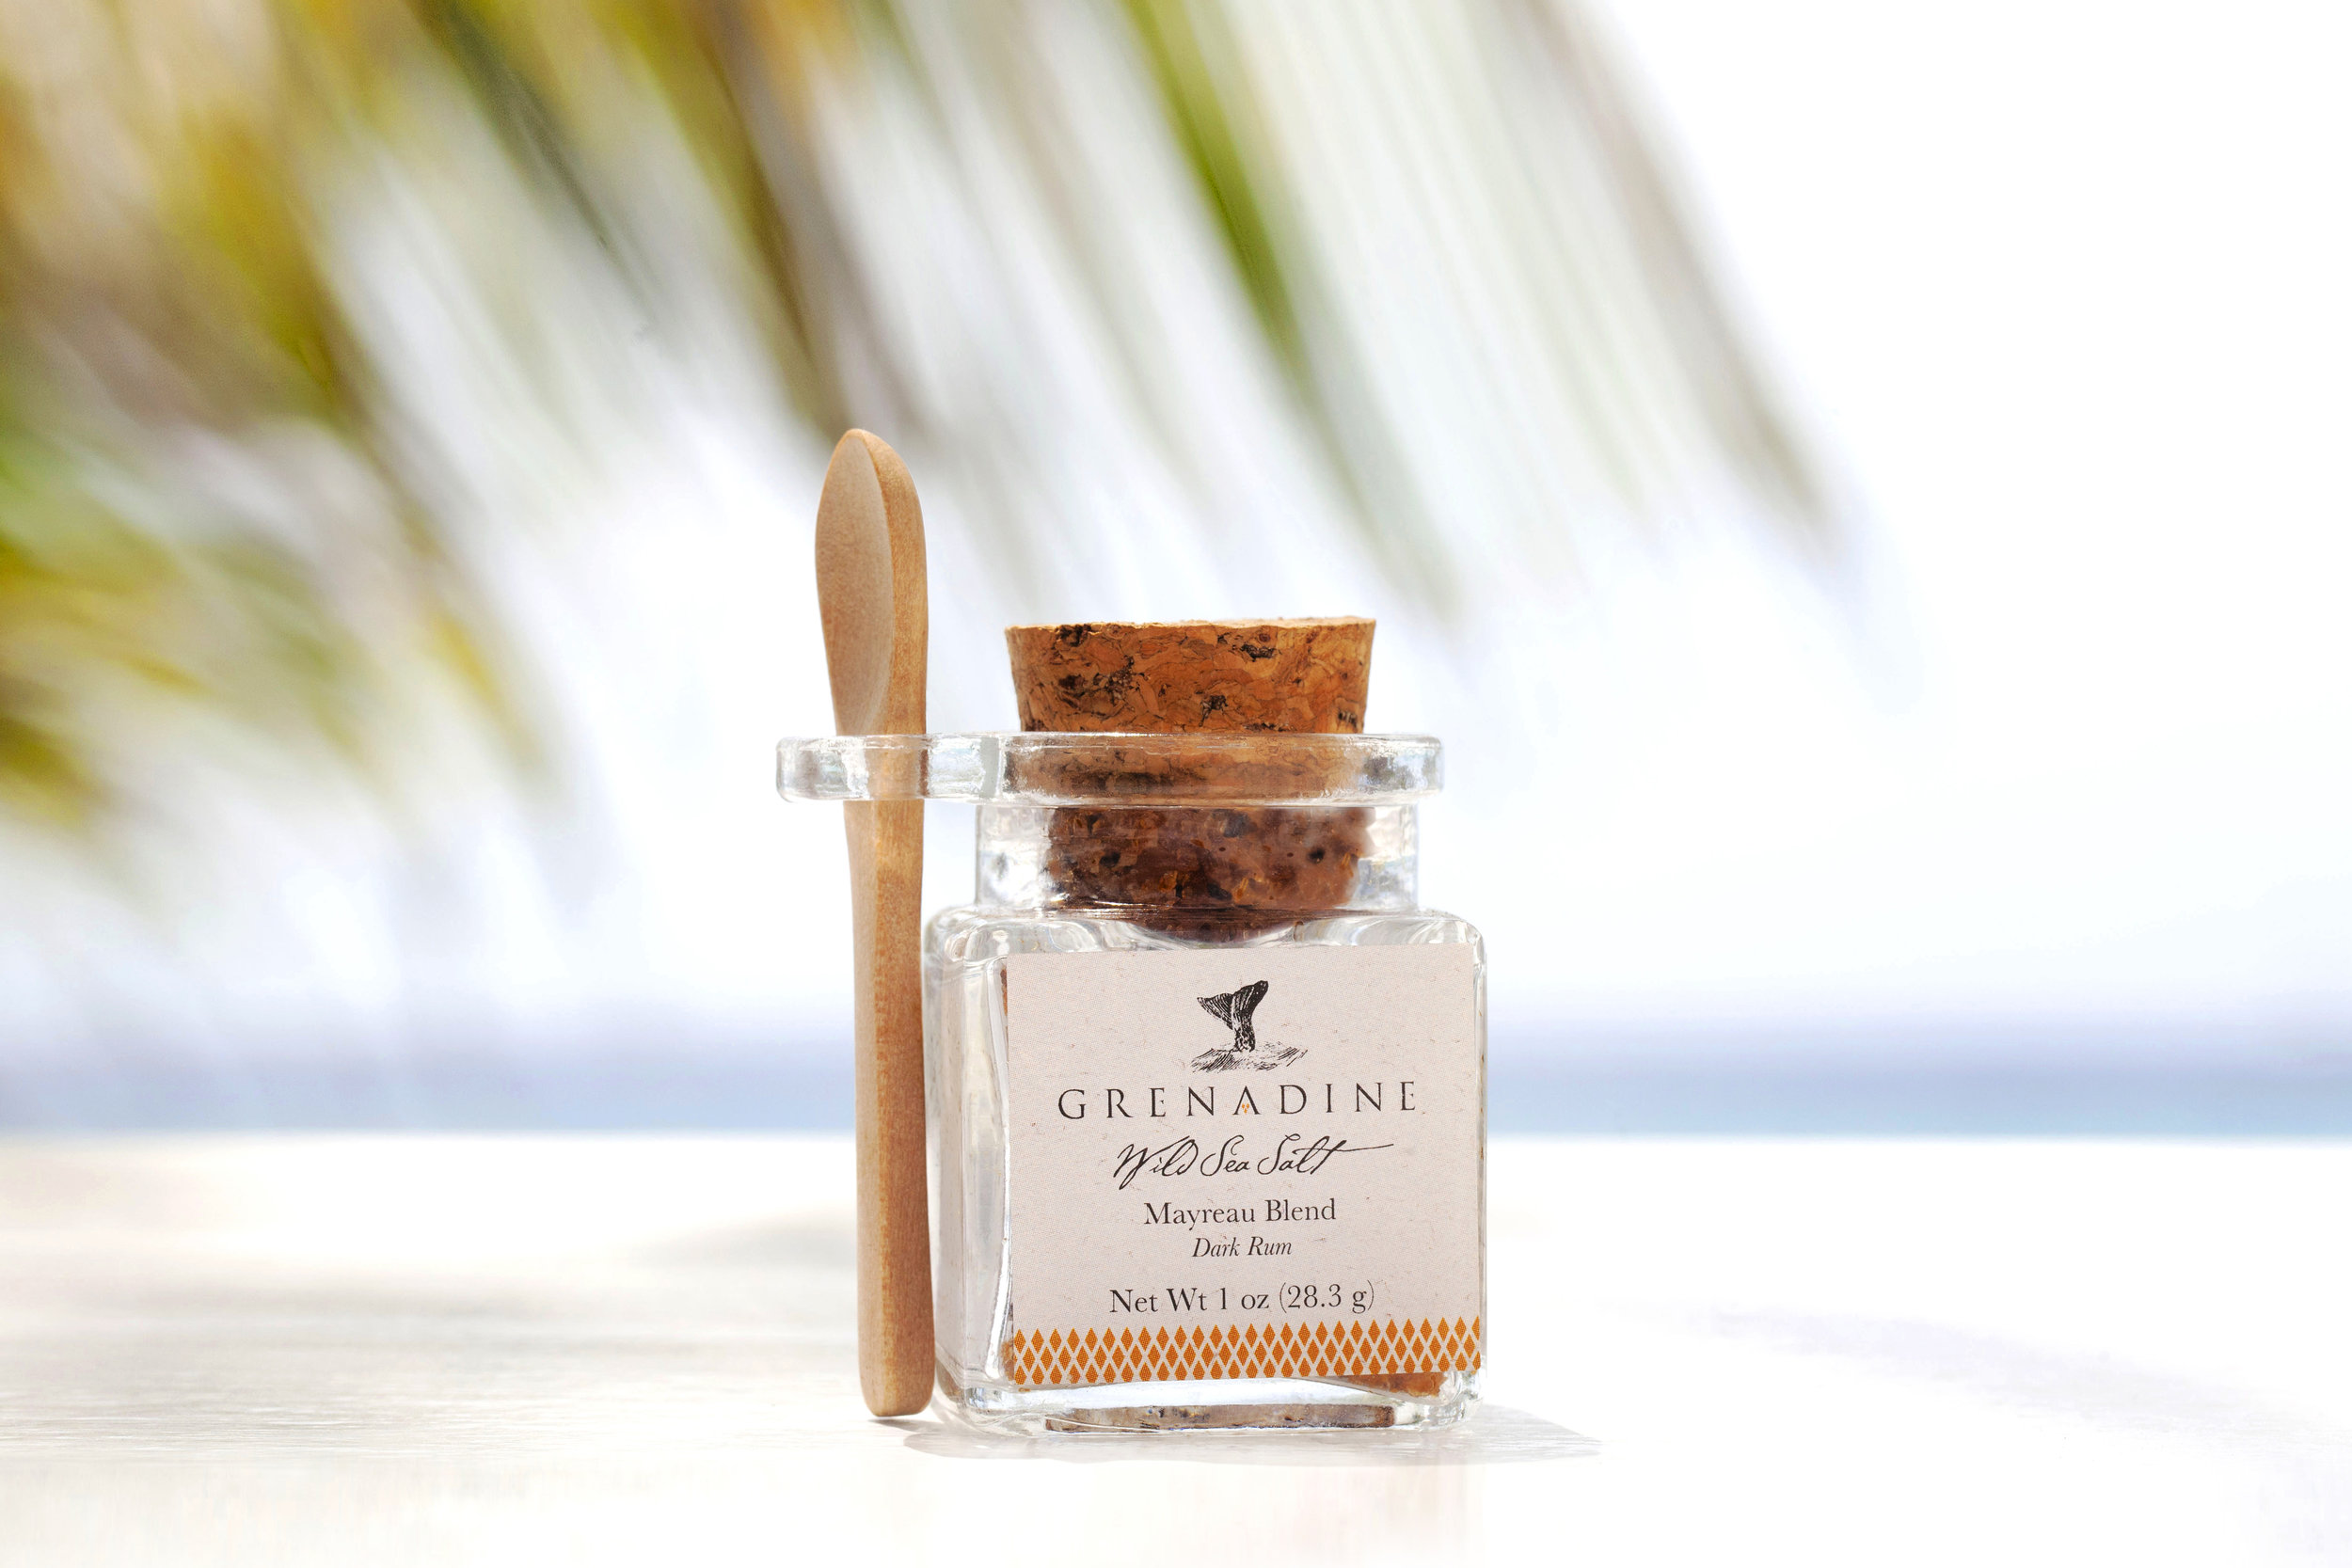 Mayreau Blend - - Dark Rum -This intoxicating blend stirs up island reveries of warm sandy beaches and languid sunsets. This blend enhances the flavor of all seafood, meats, poultry, vegetables and desserts; try sprinkling it atop your mango and banana smoothie or rimming the glass of your favorite cocktail.SIZES1 oz | 2.5 oz | 5.5 oz